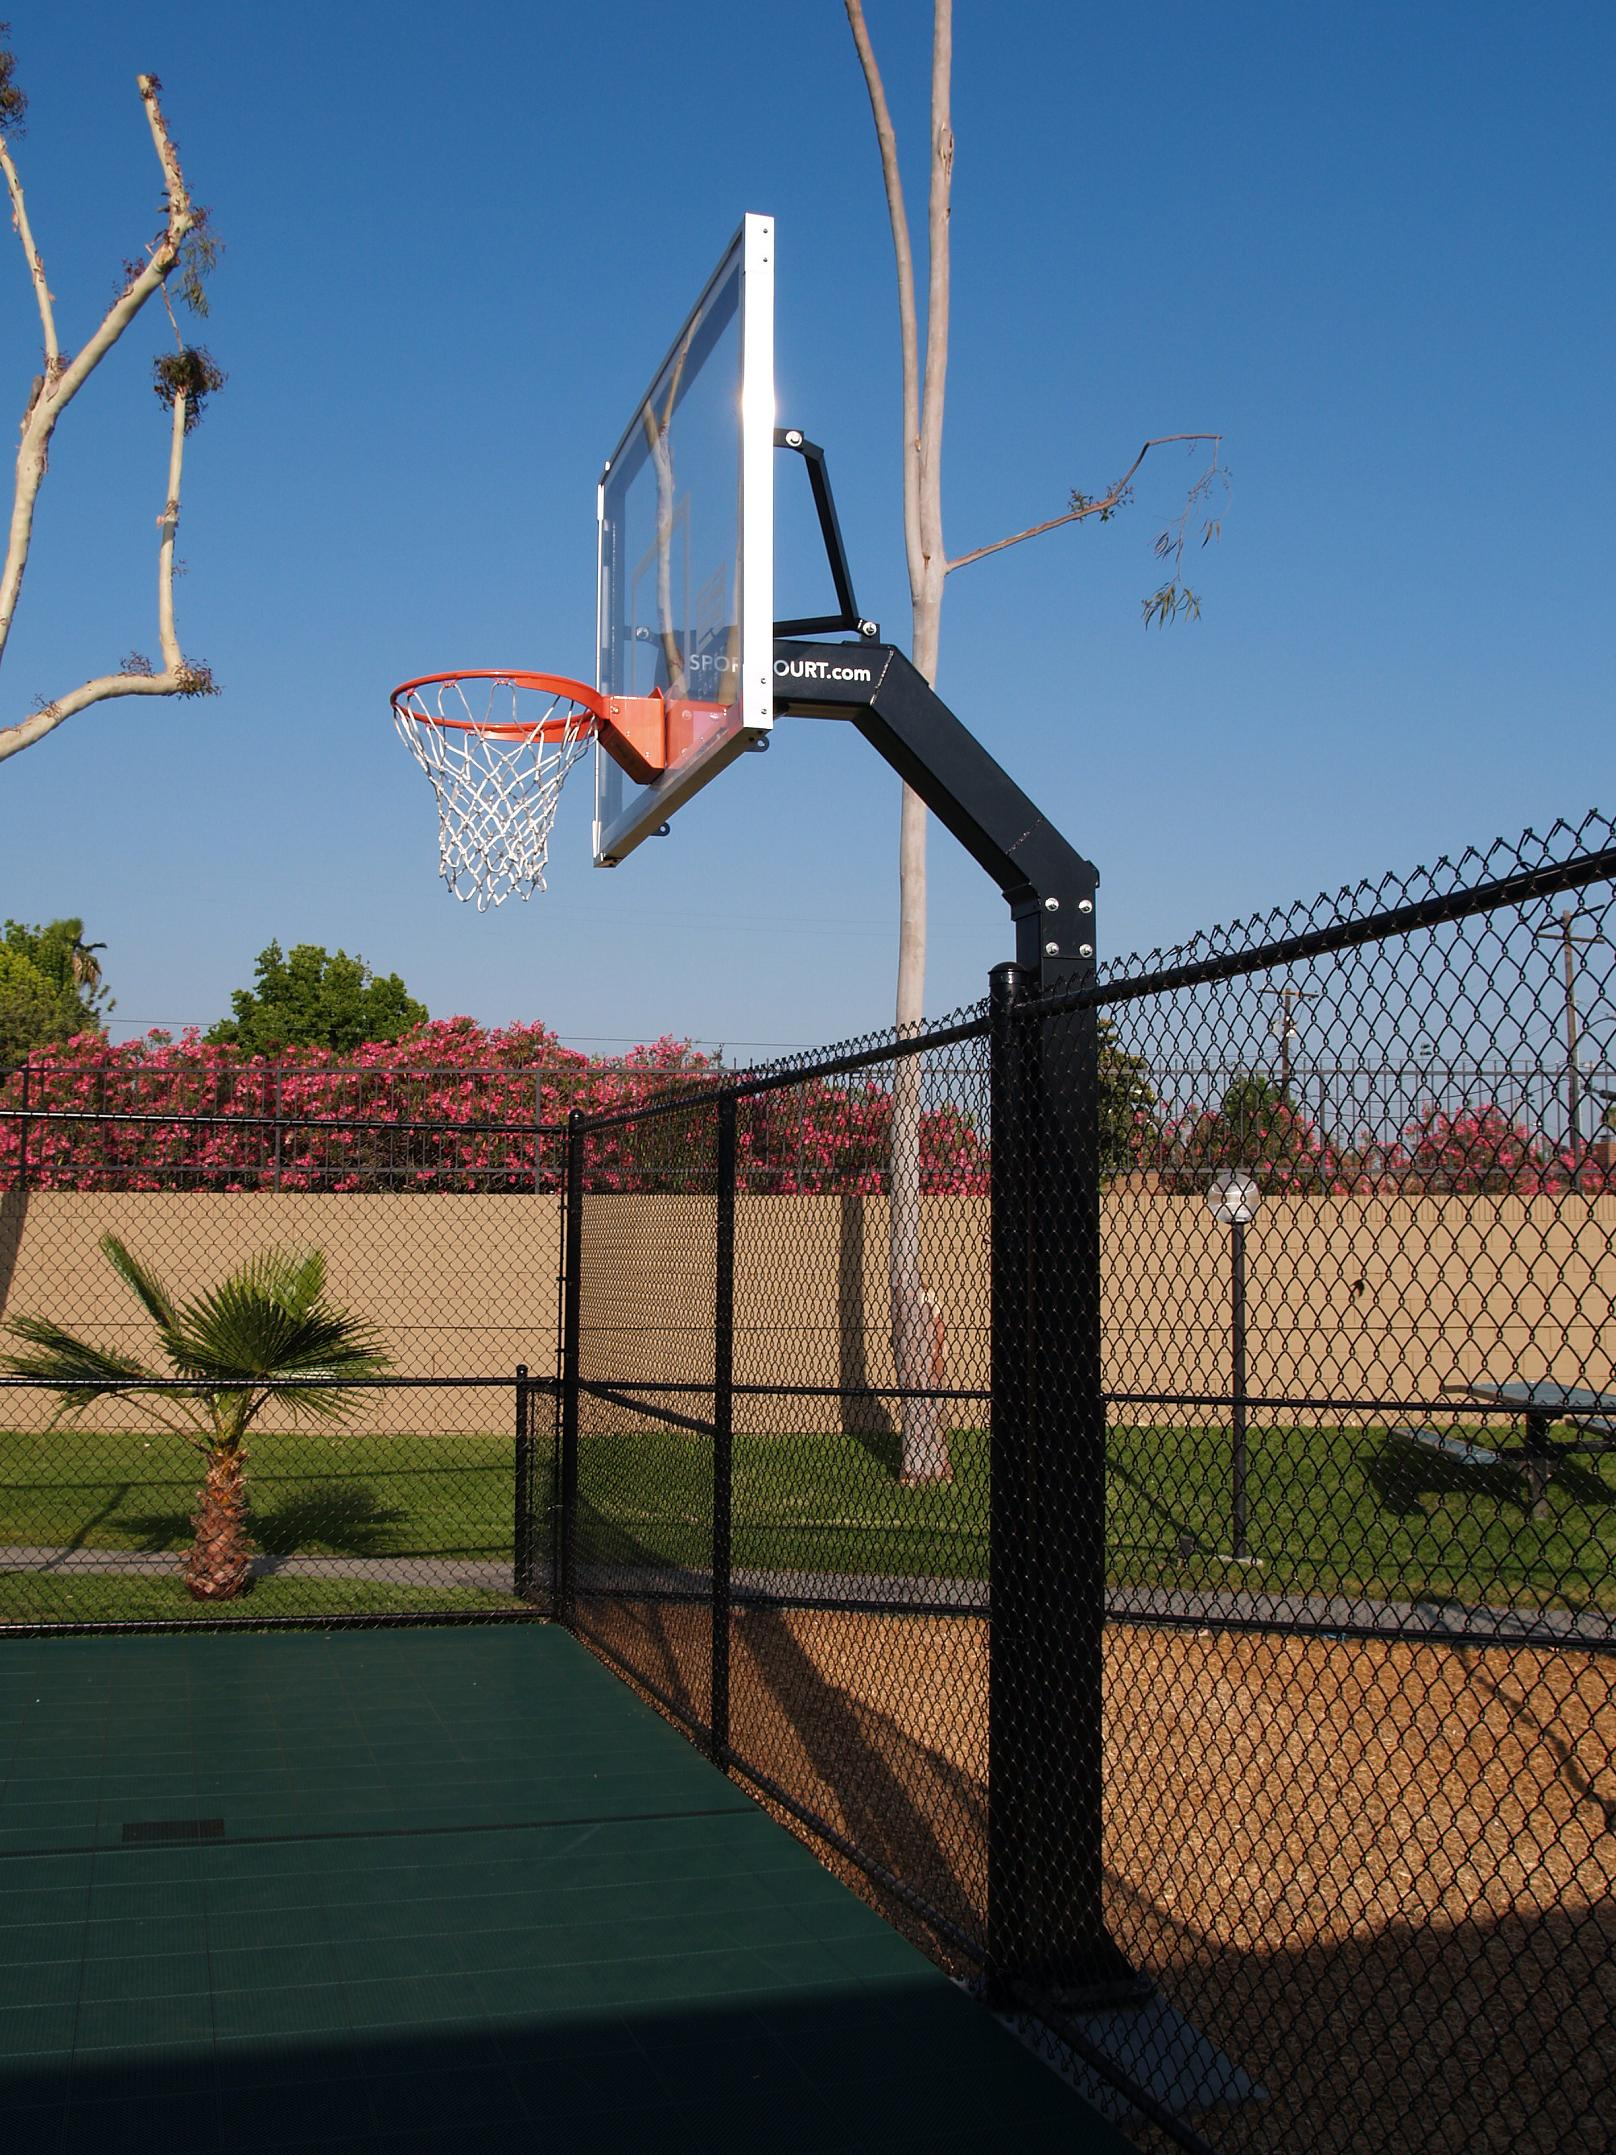 Playground Basketball Hoop at School